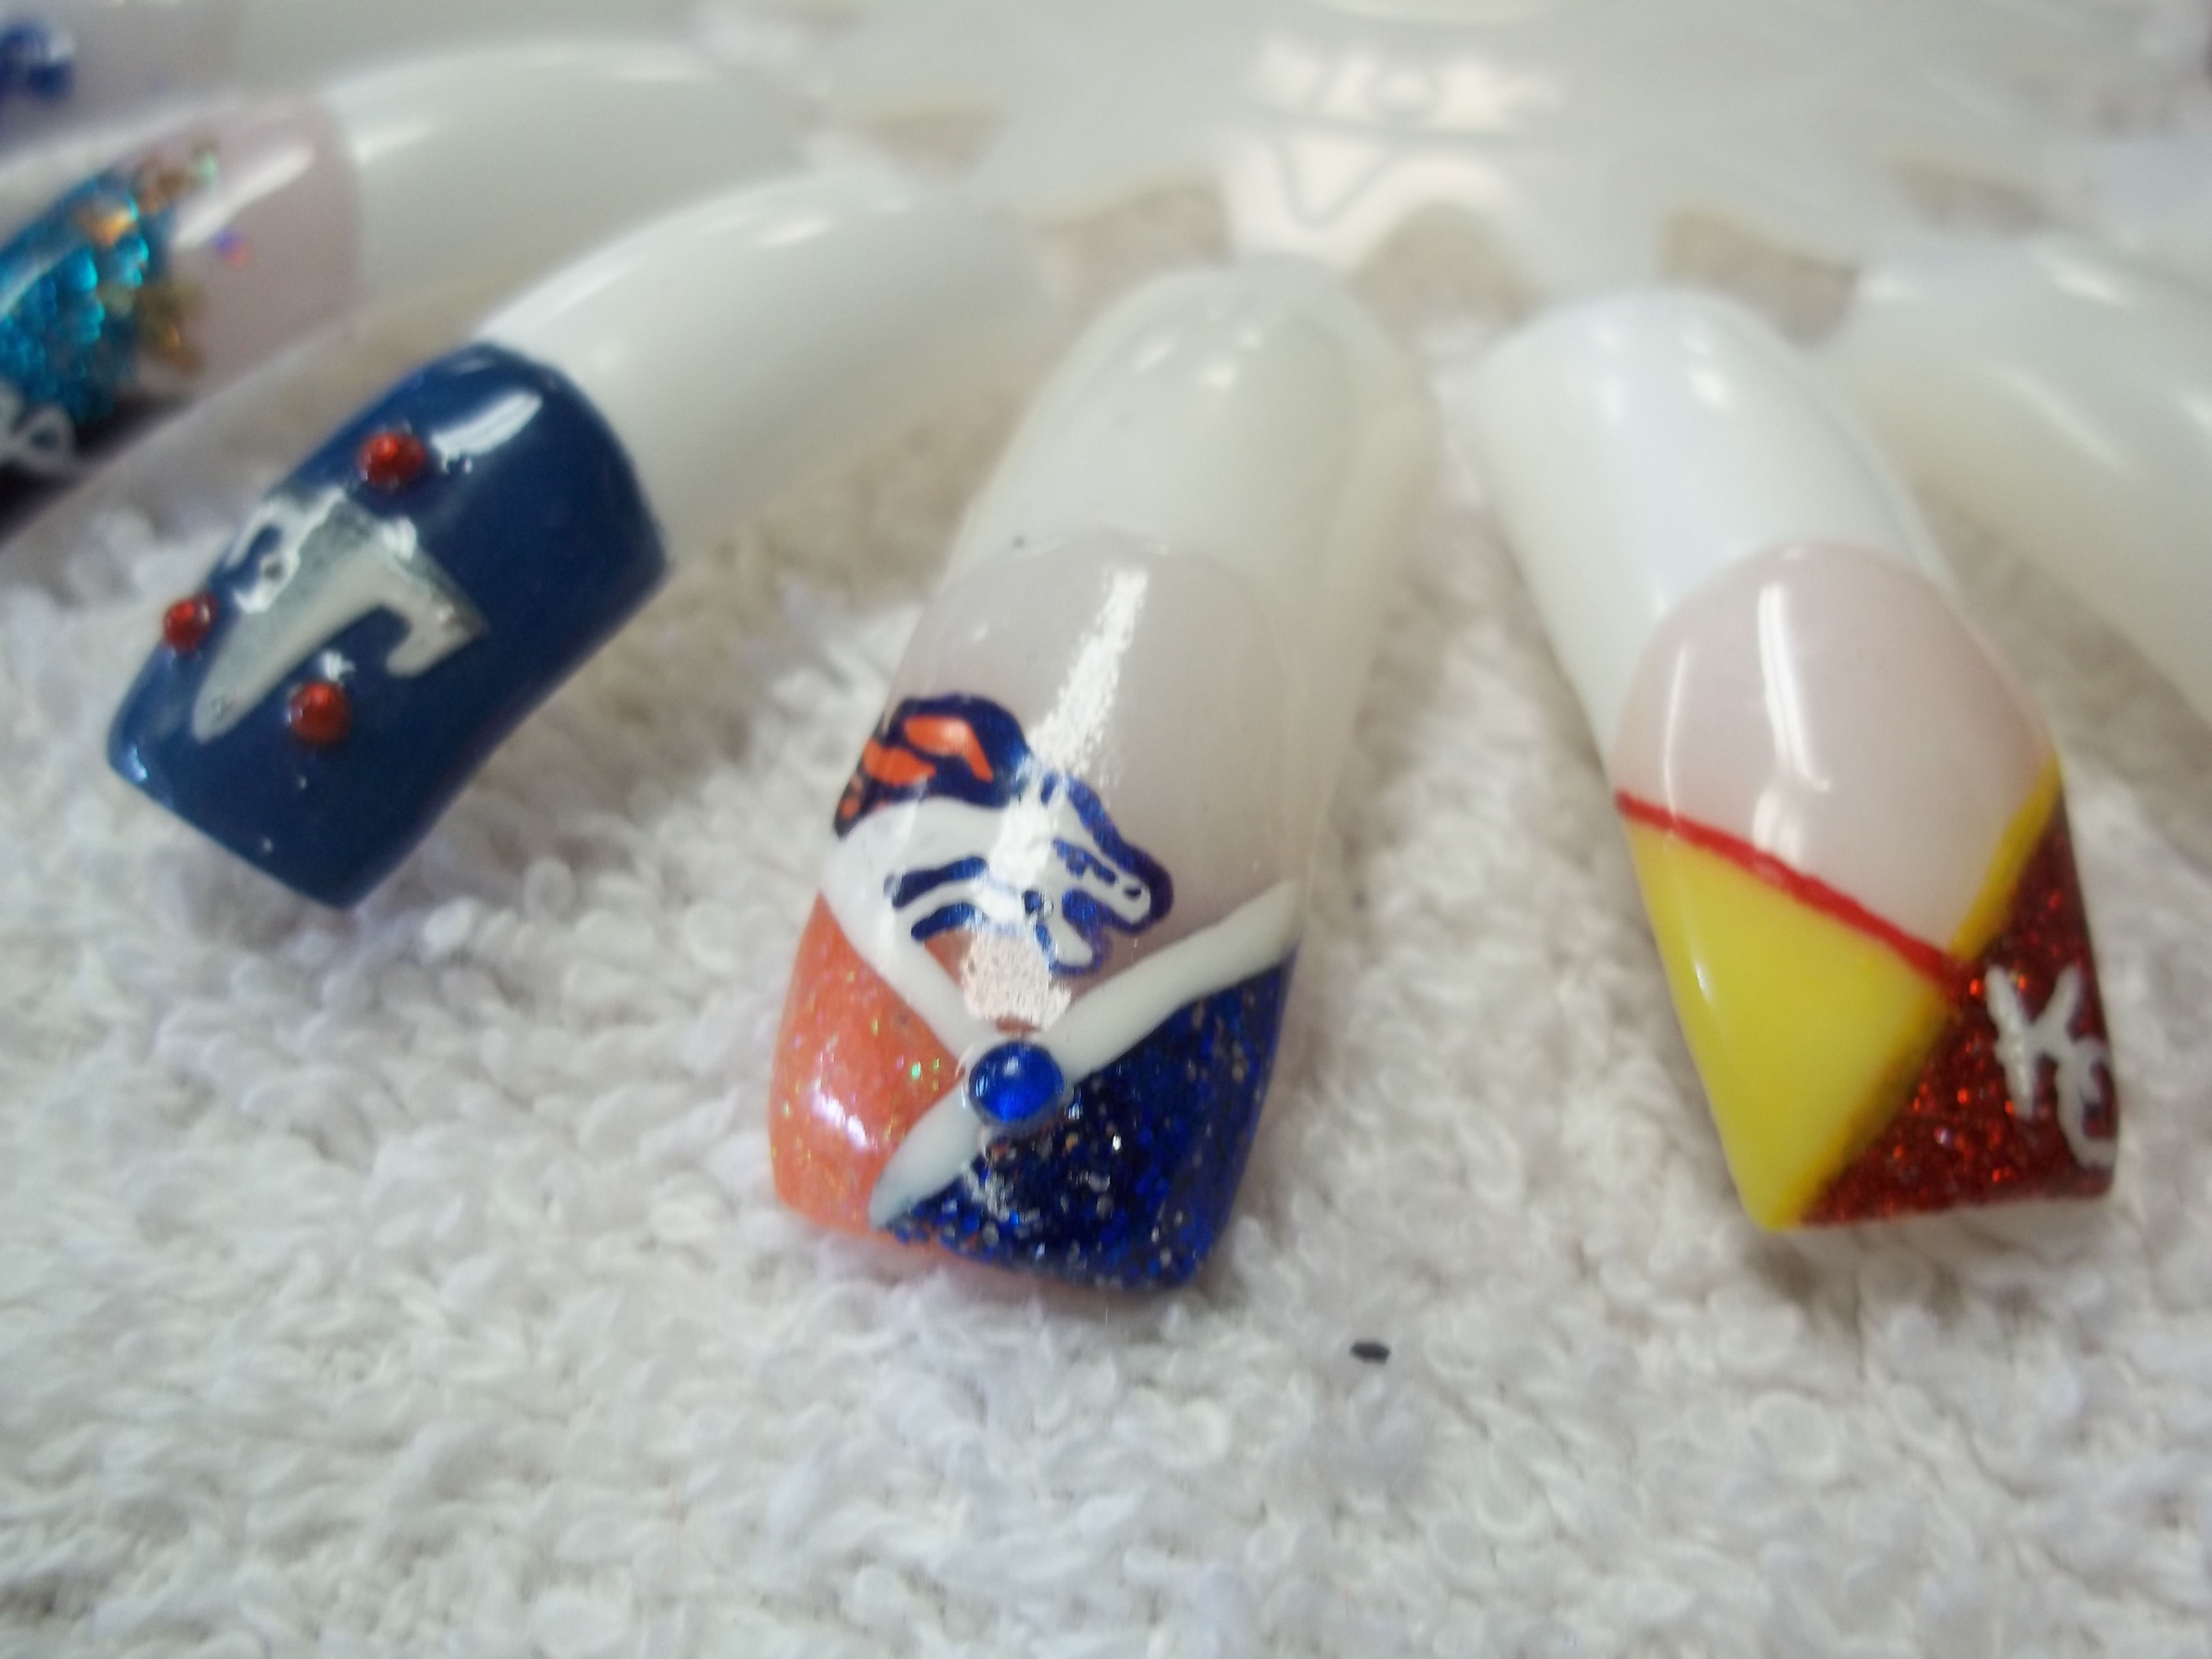 Nfl football nails designs tennessee titans denver broncos kansas nfl football nails designs tennessee titans denver broncos kansas city chiefs prinsesfo Gallery